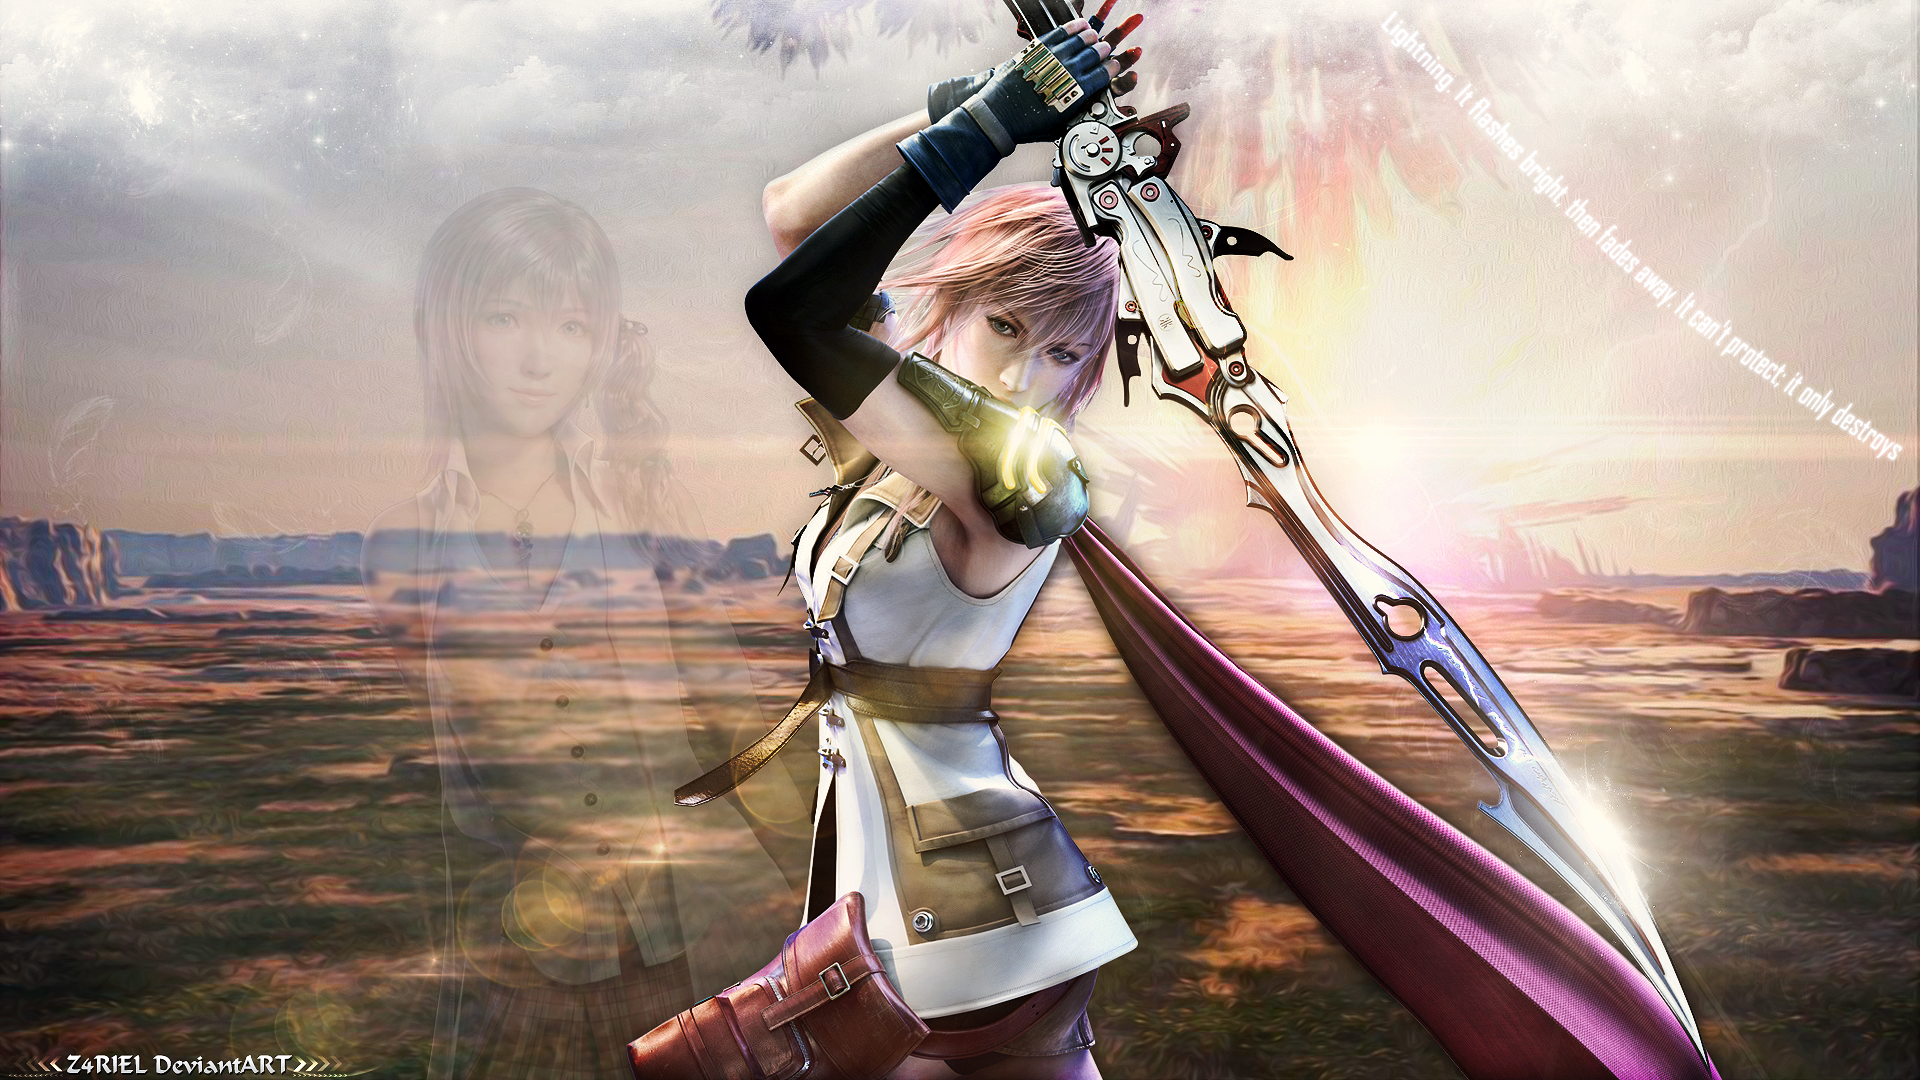 wallpaper - lightning [final fantasy xiii]z4riel on deviantart